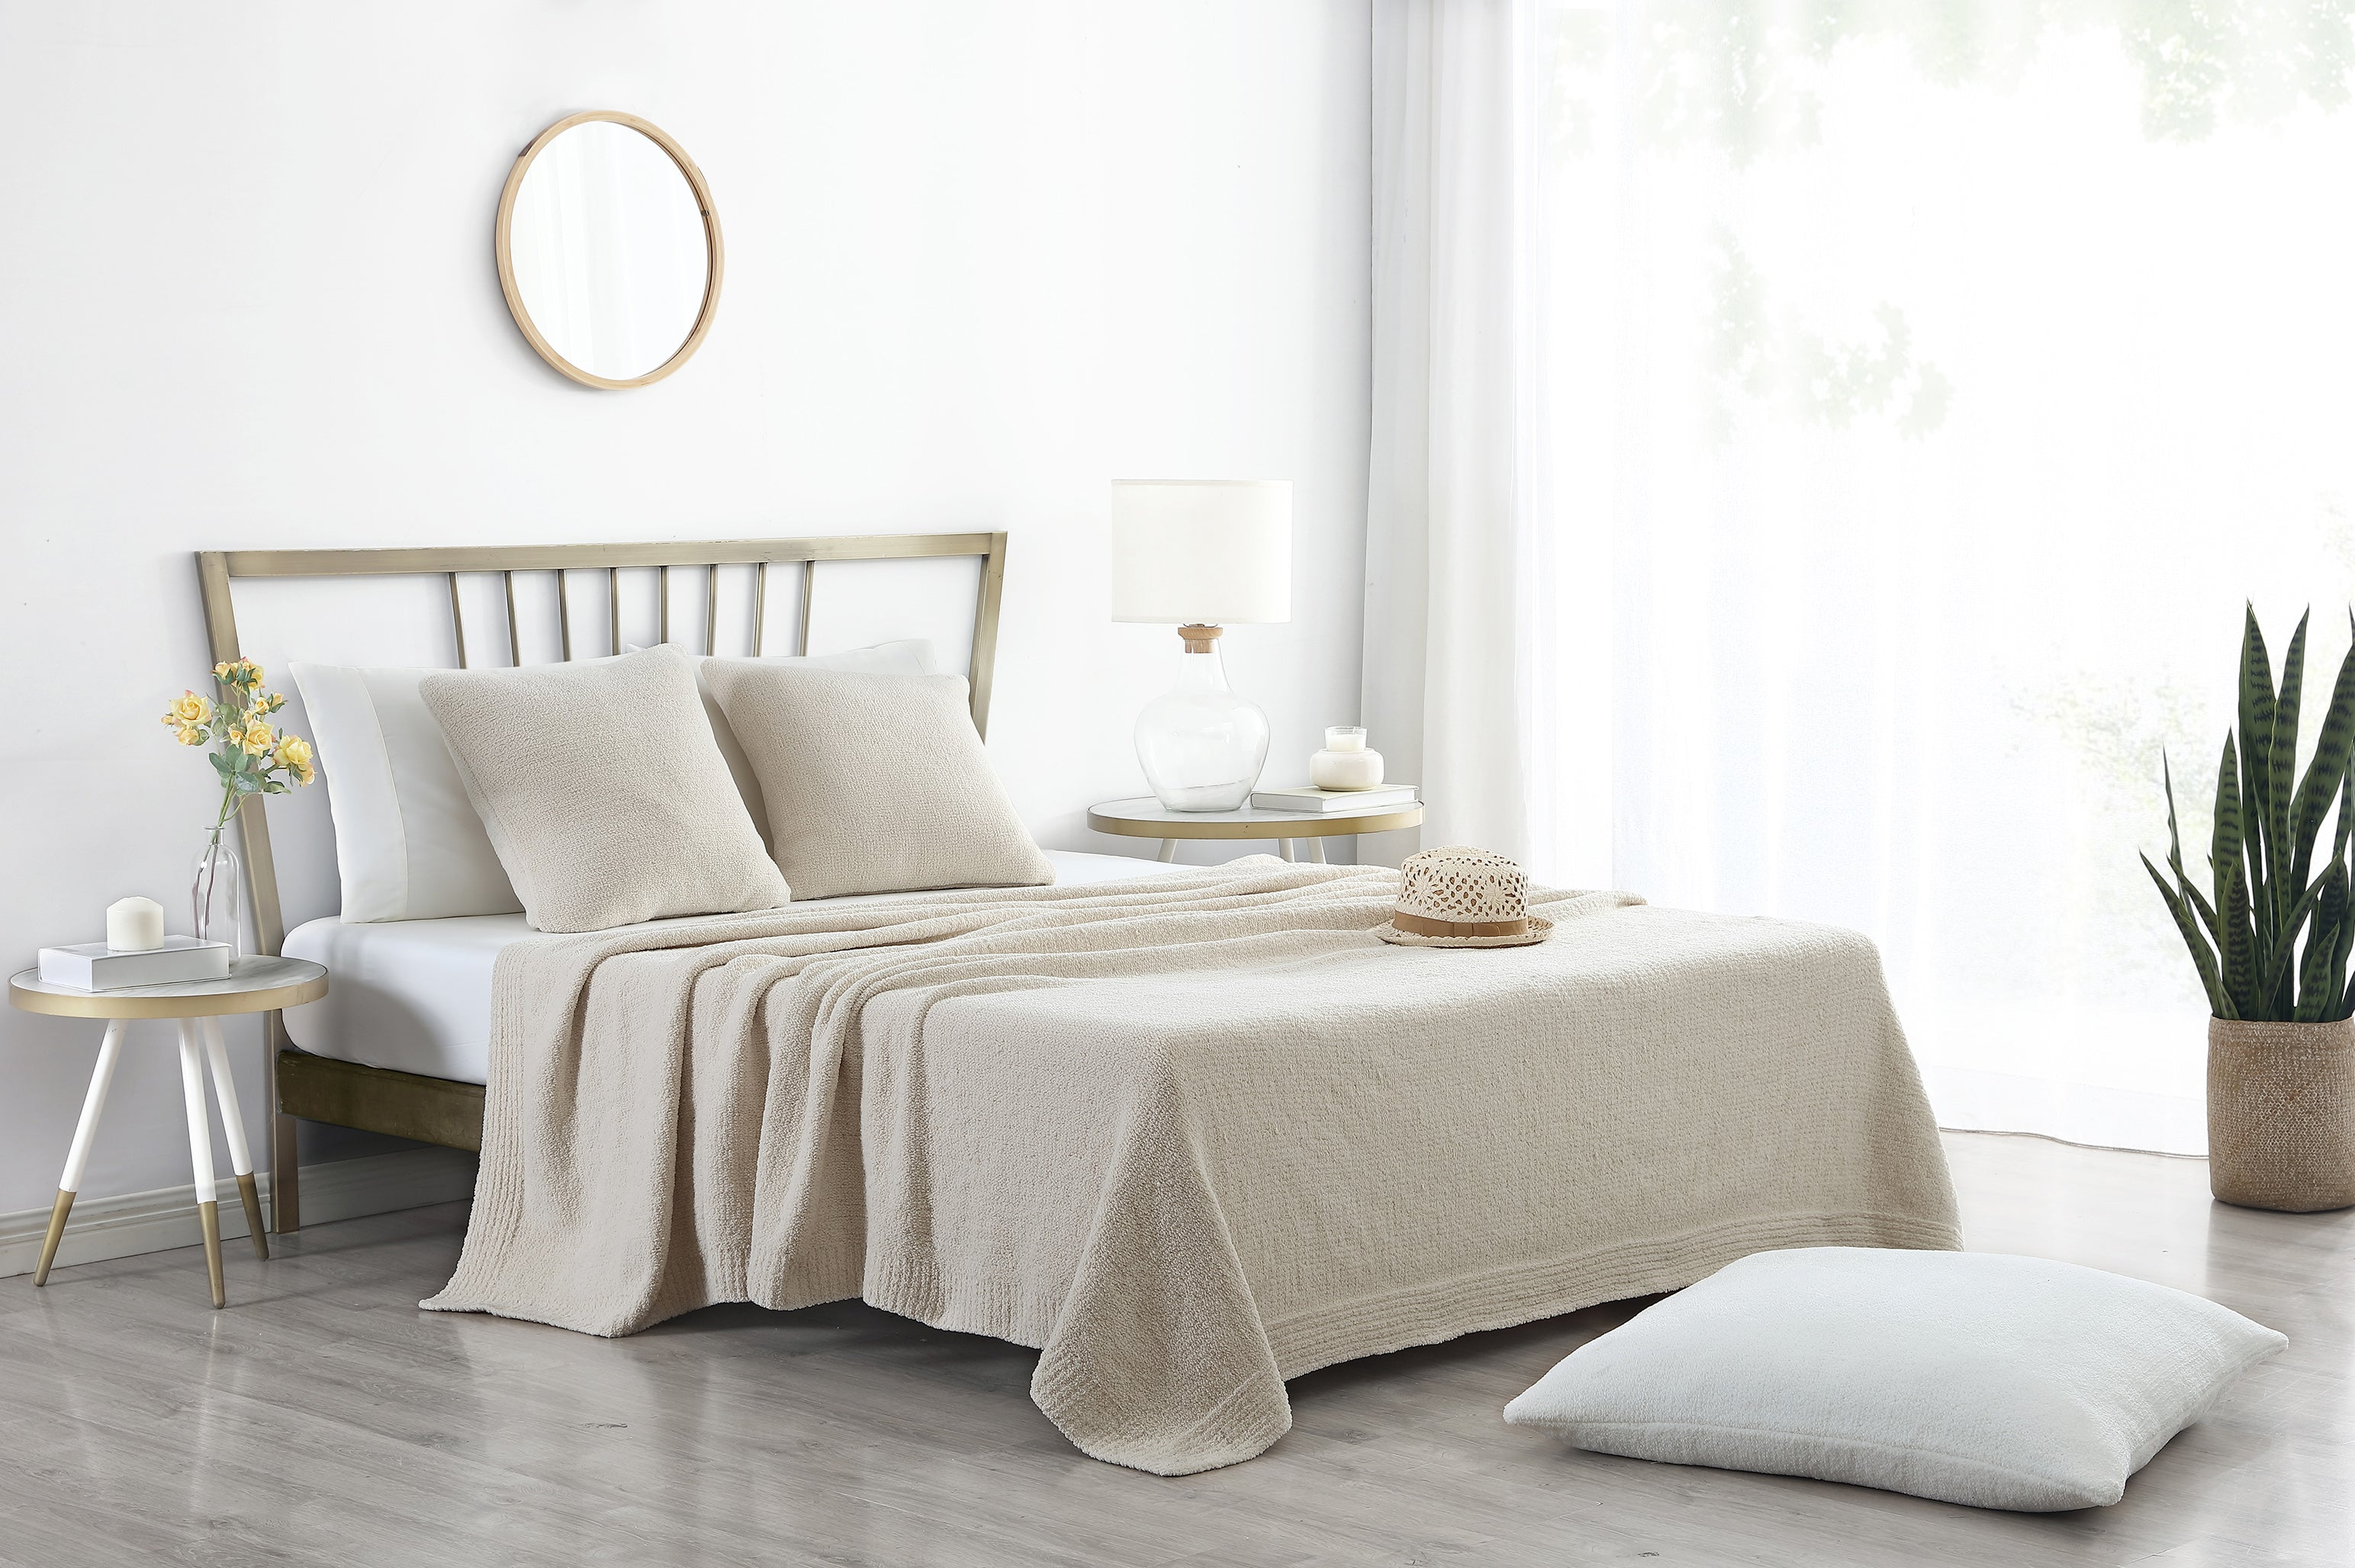 Snug Bed Blanket in Sahara Tan